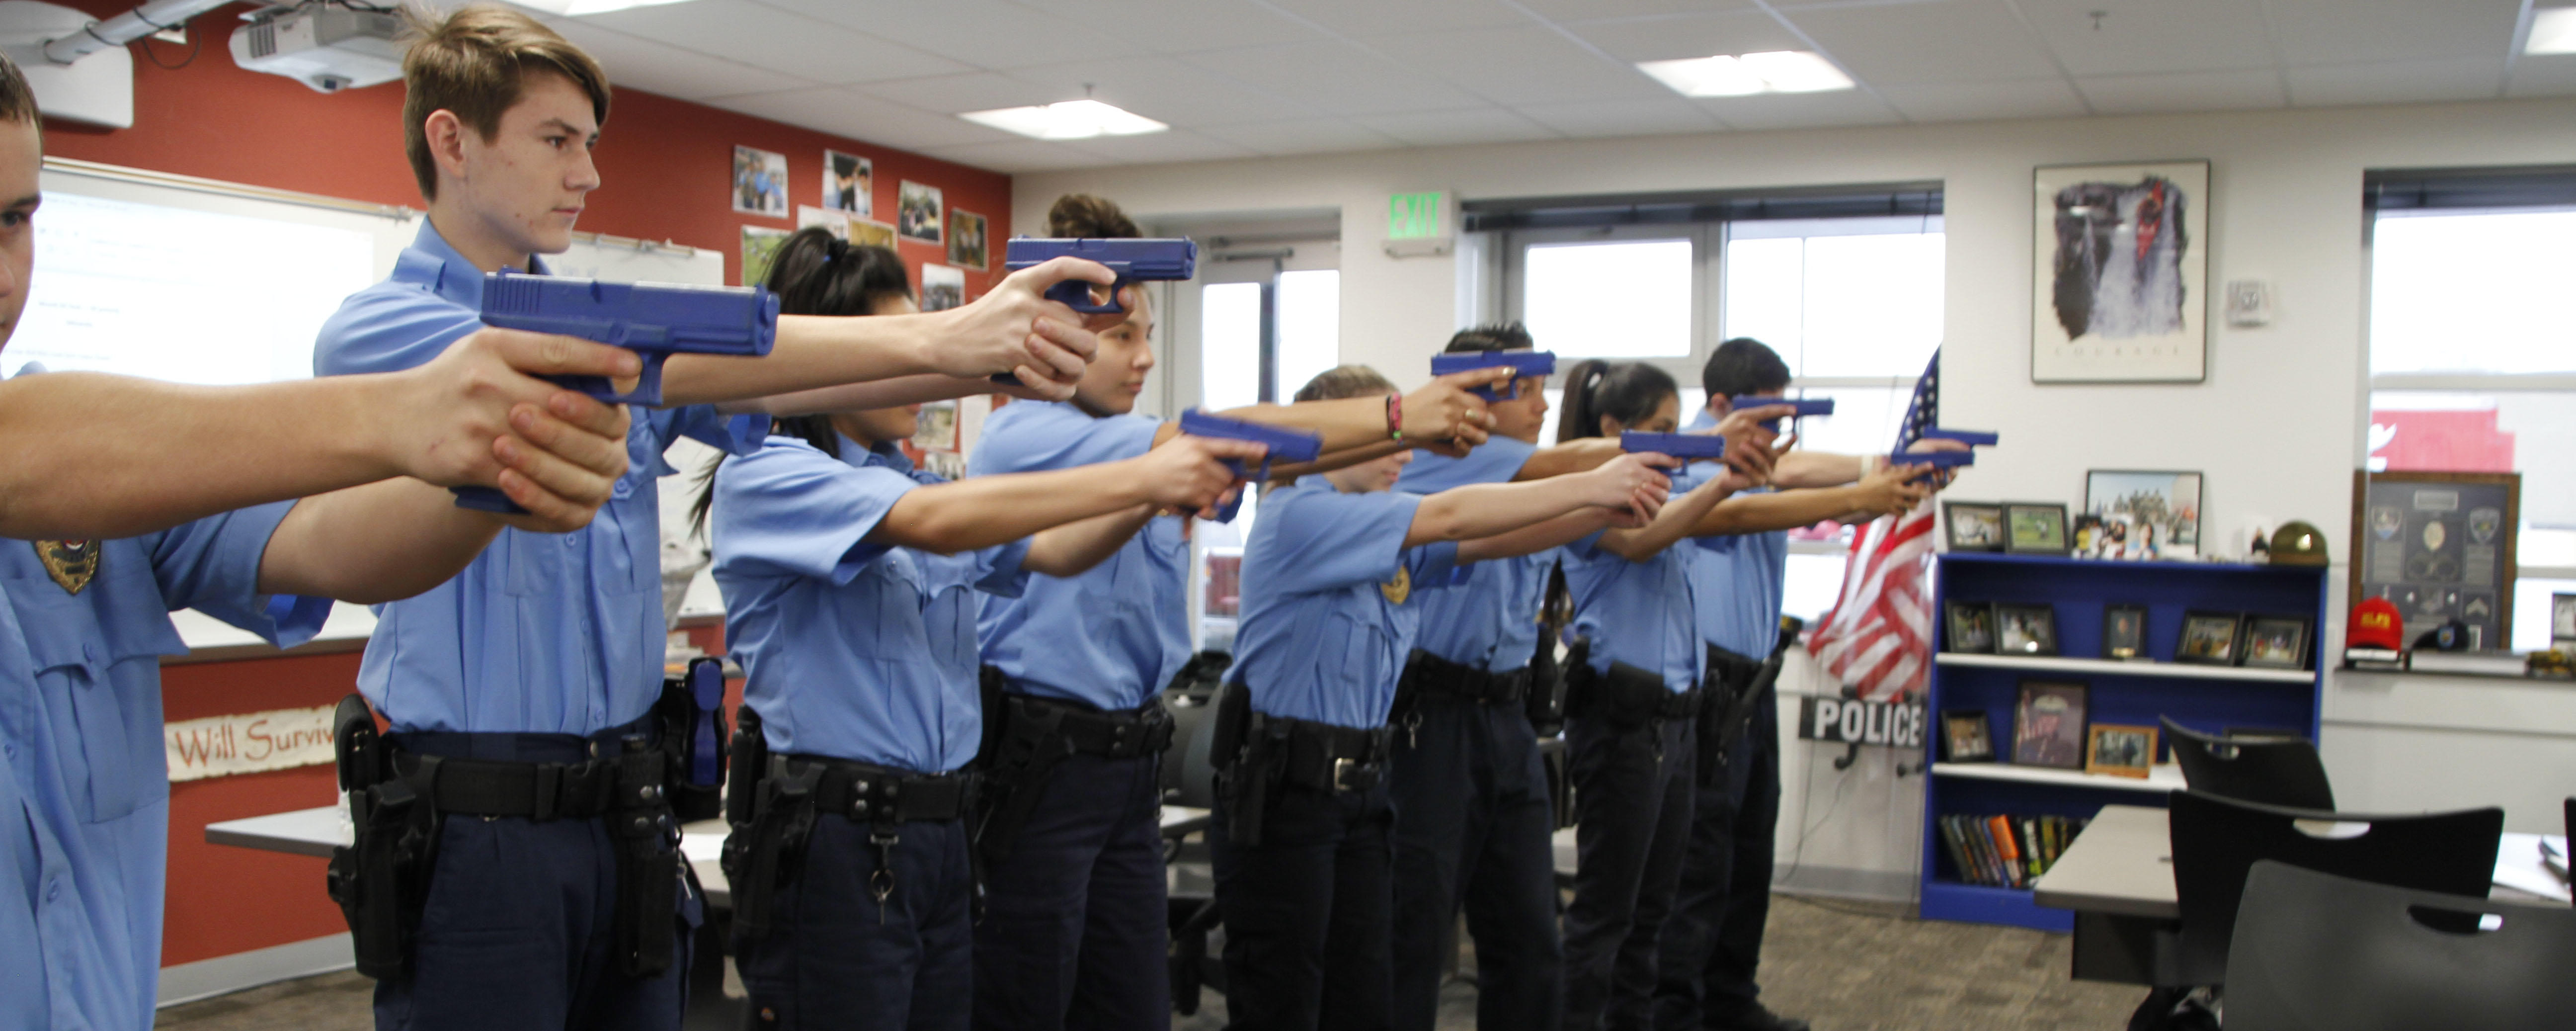 Hands-on Criminal Justice/Police Science